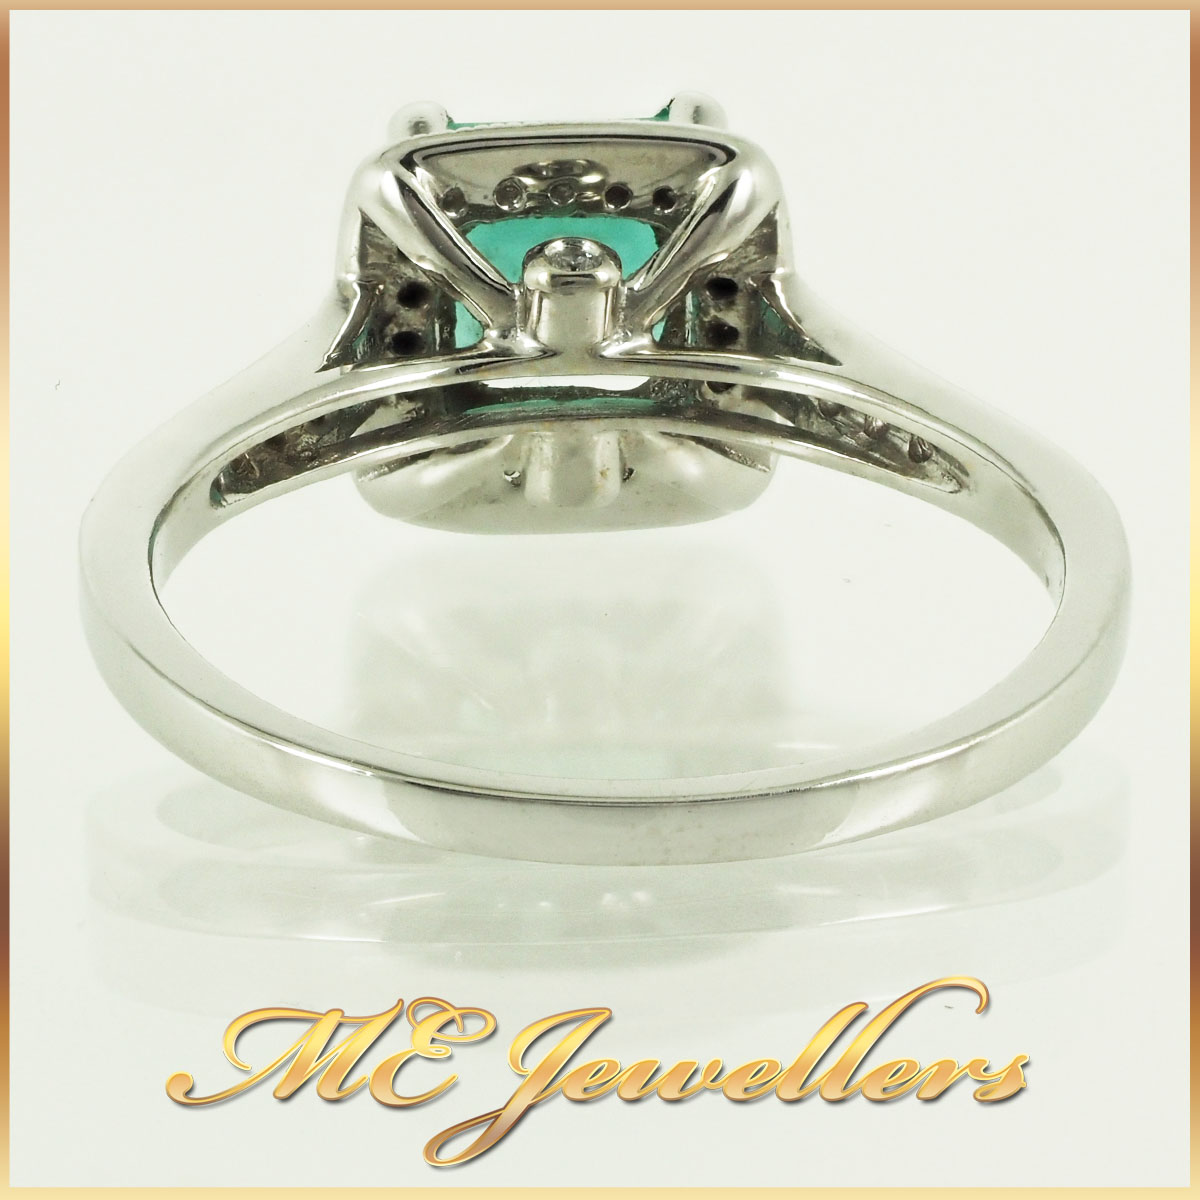 6746 natural-emerald-ring-with-diamond-18k-whg-3